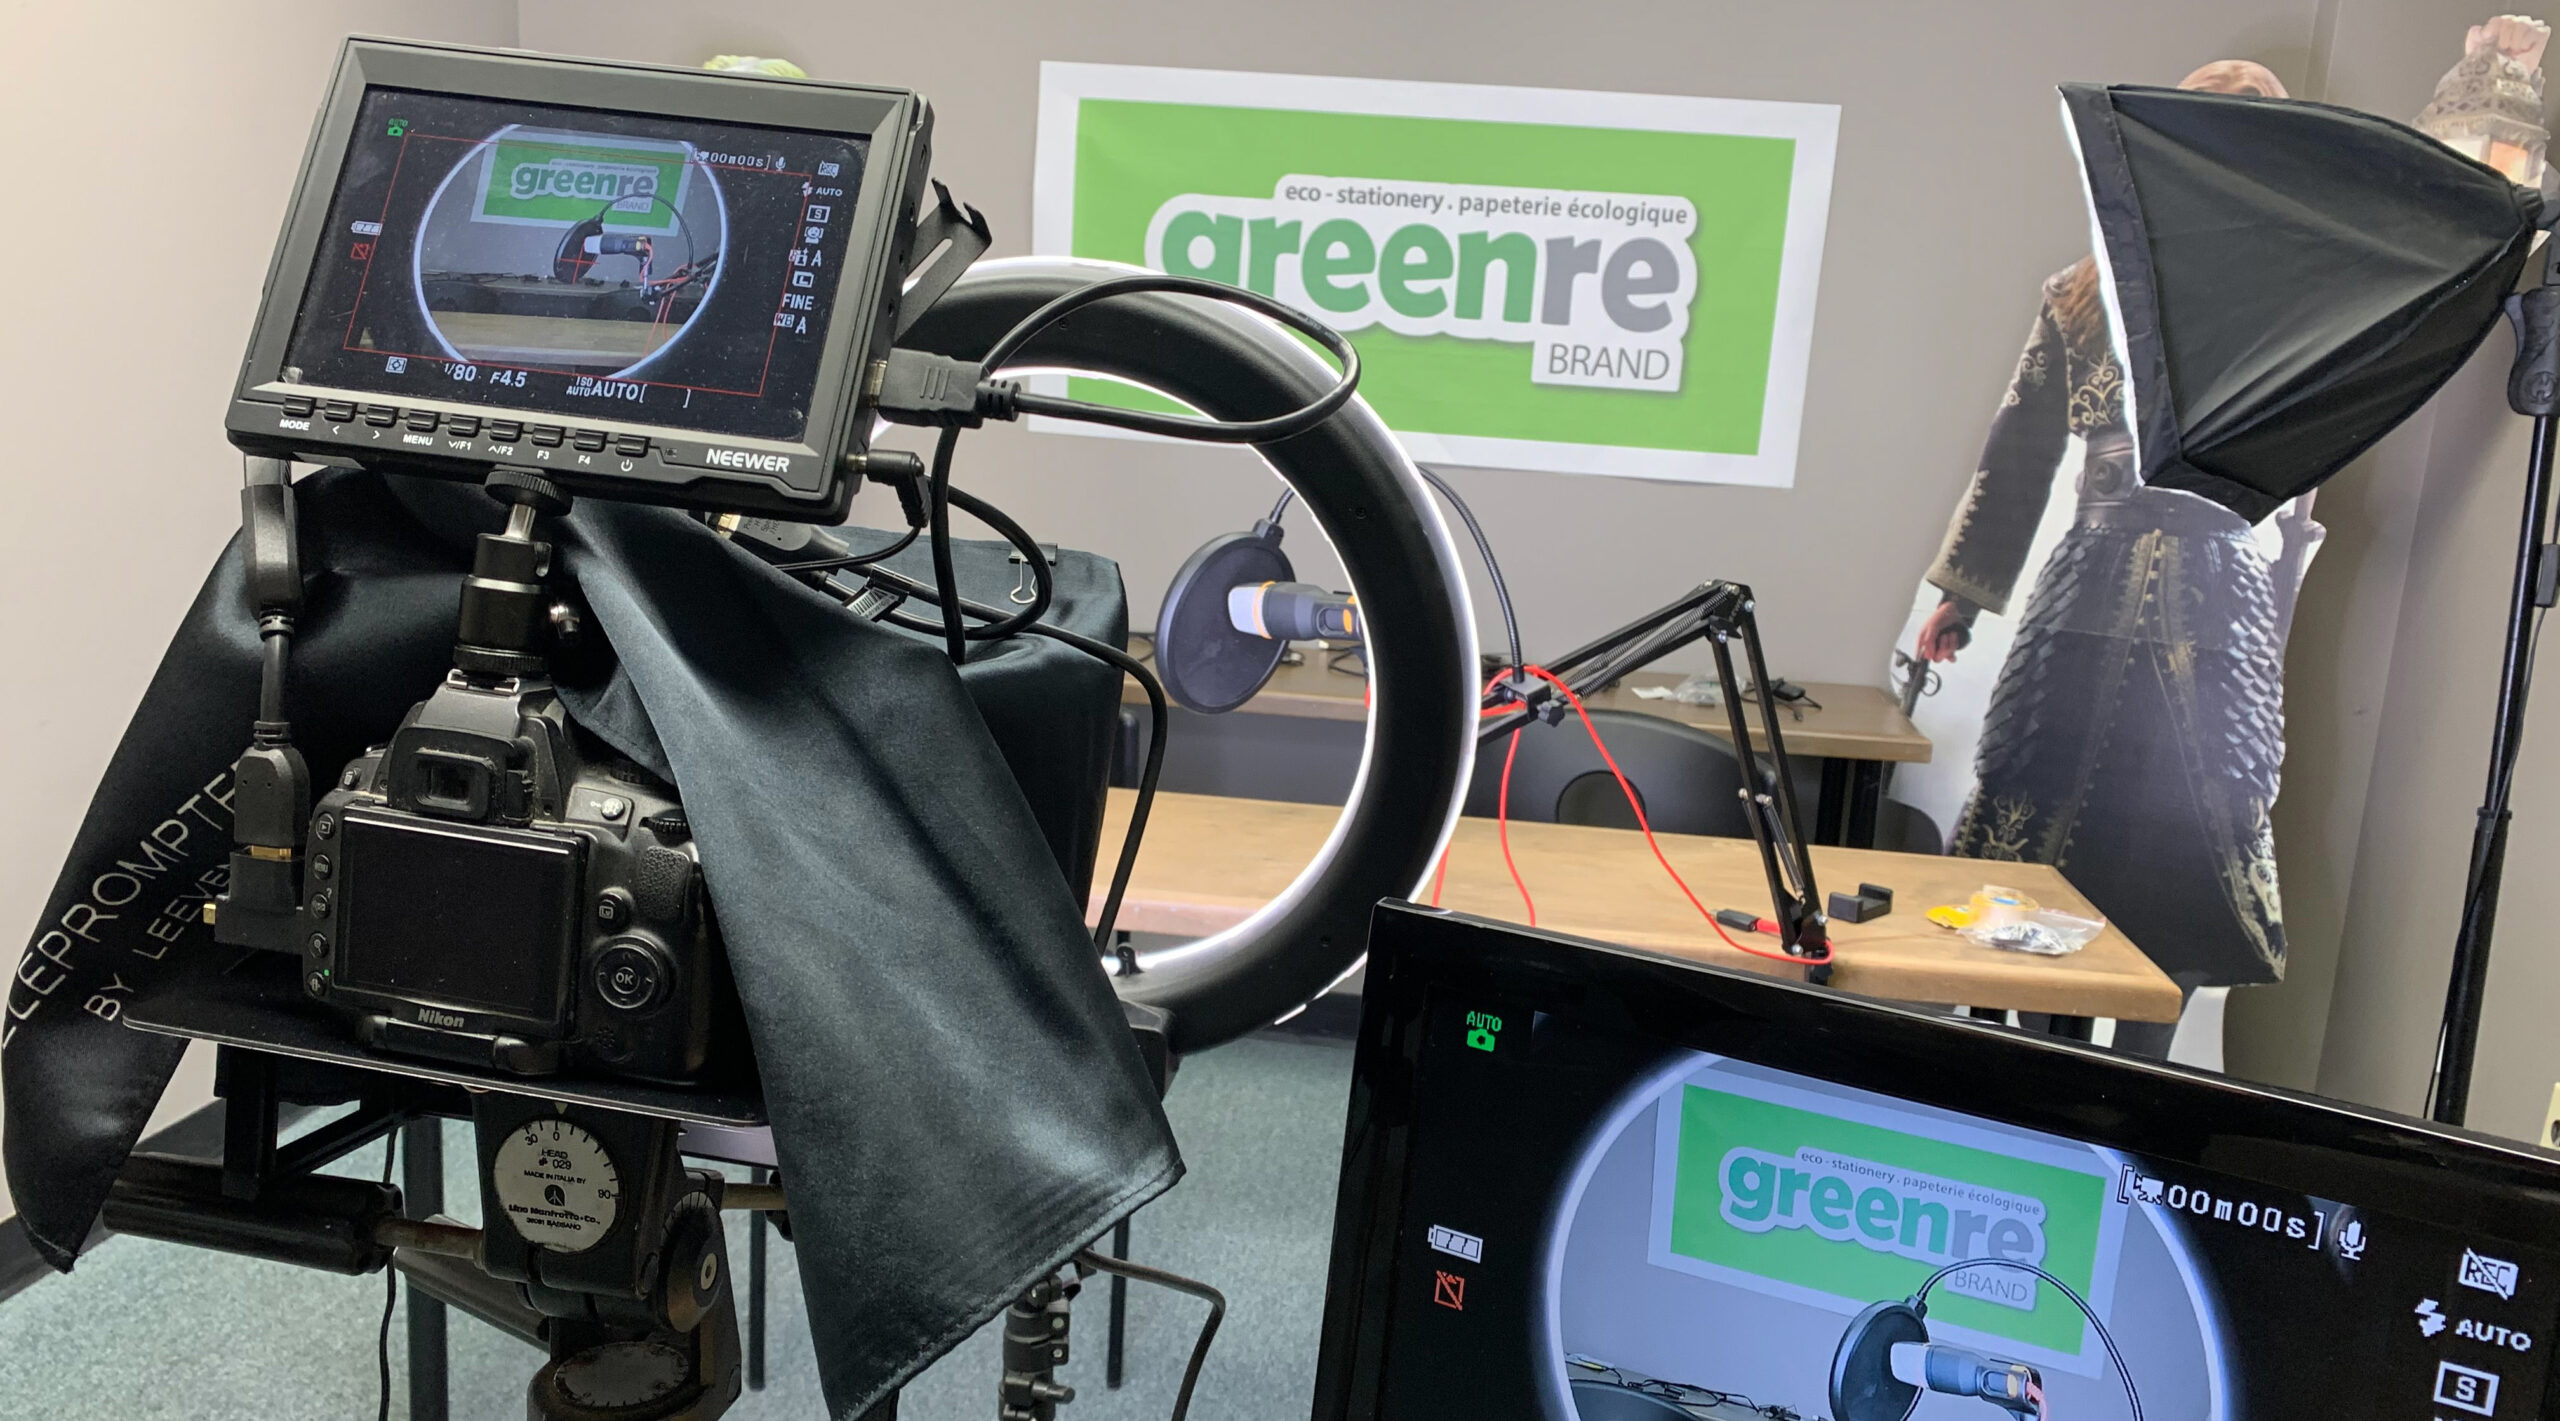 The greenre studio, including video equipment and the logo on the wall.